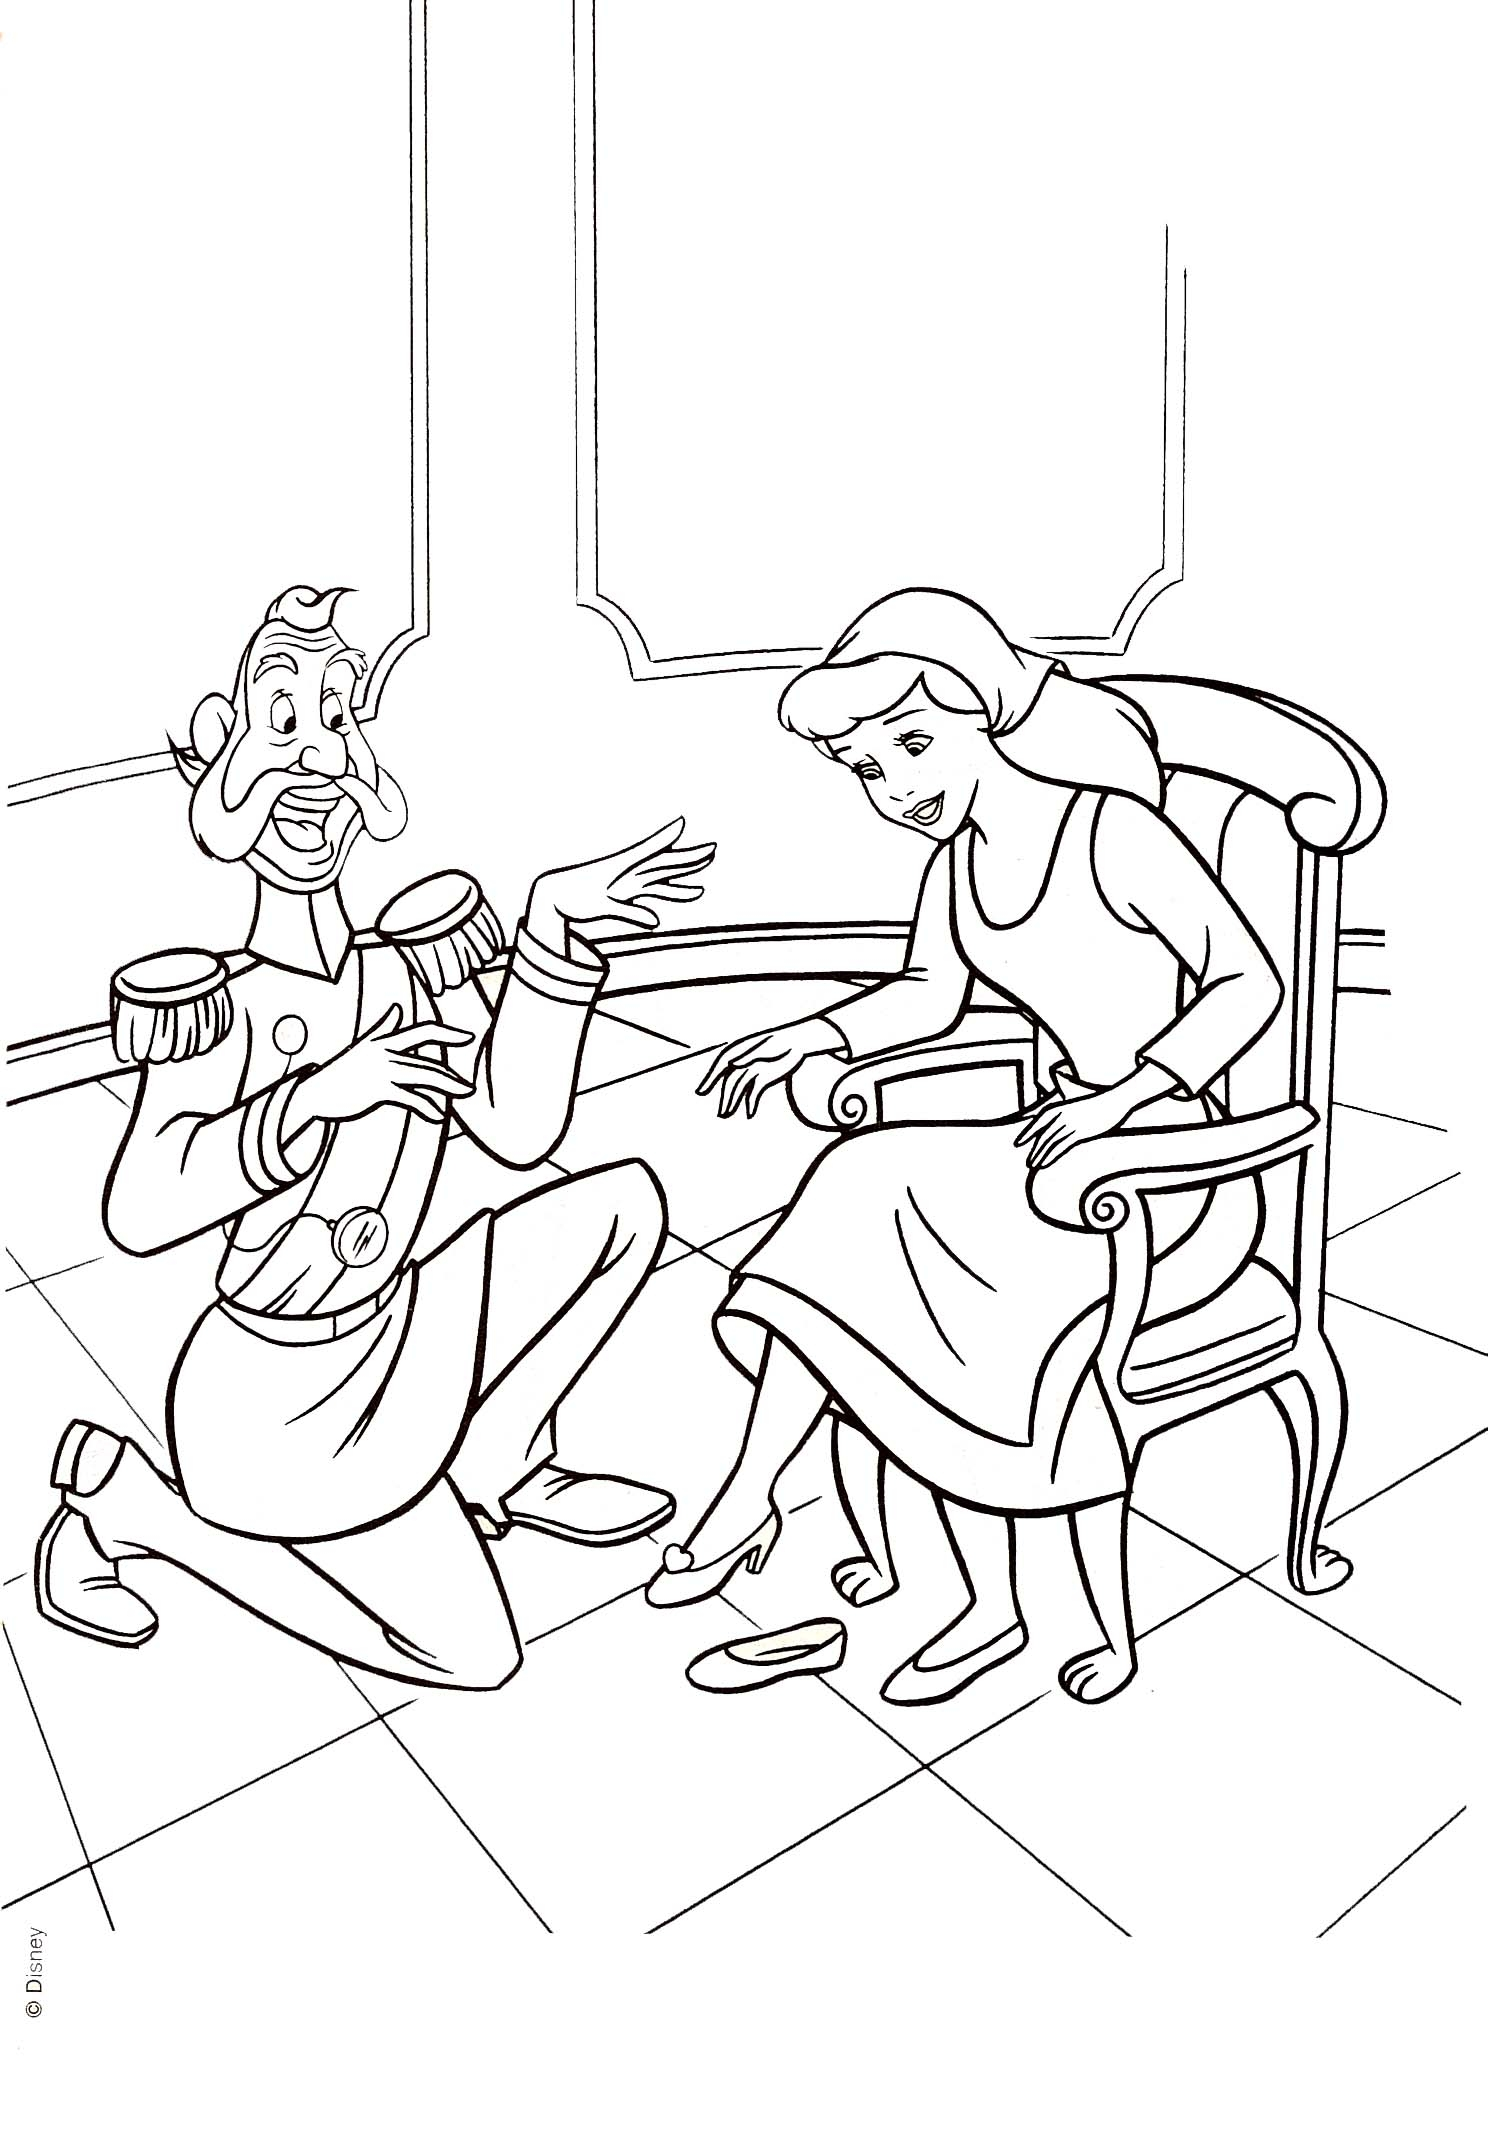 Laura numeroff coloring pages coloring pages for If you give a pig a pancake coloring pages